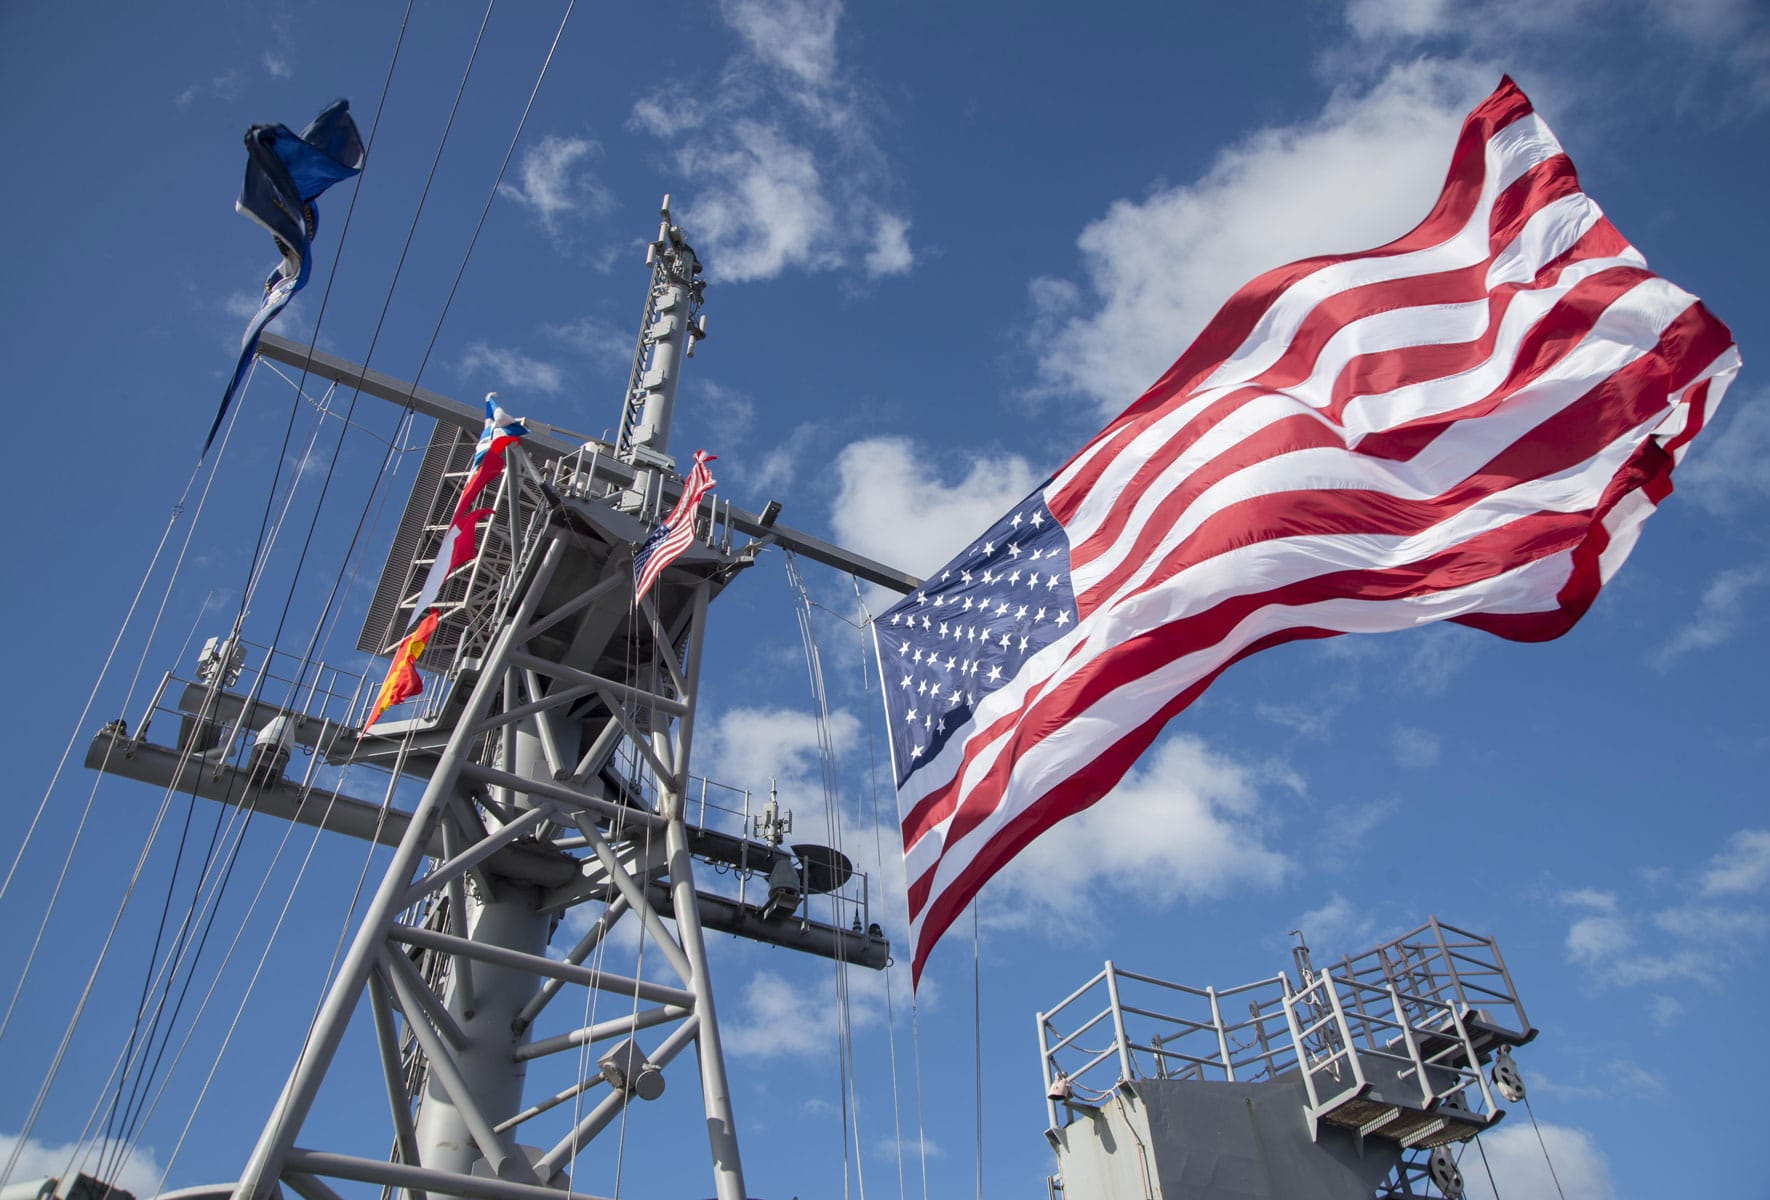 The United States Navy battle flag and battle ensign fly on the masts of the amphibious assault ship USS Bonhomme Richard (LHD 6) as the ship steams along with a Combined Amphibious Force as part of a mutli-ship sailing formation during Talisman Saber 17.